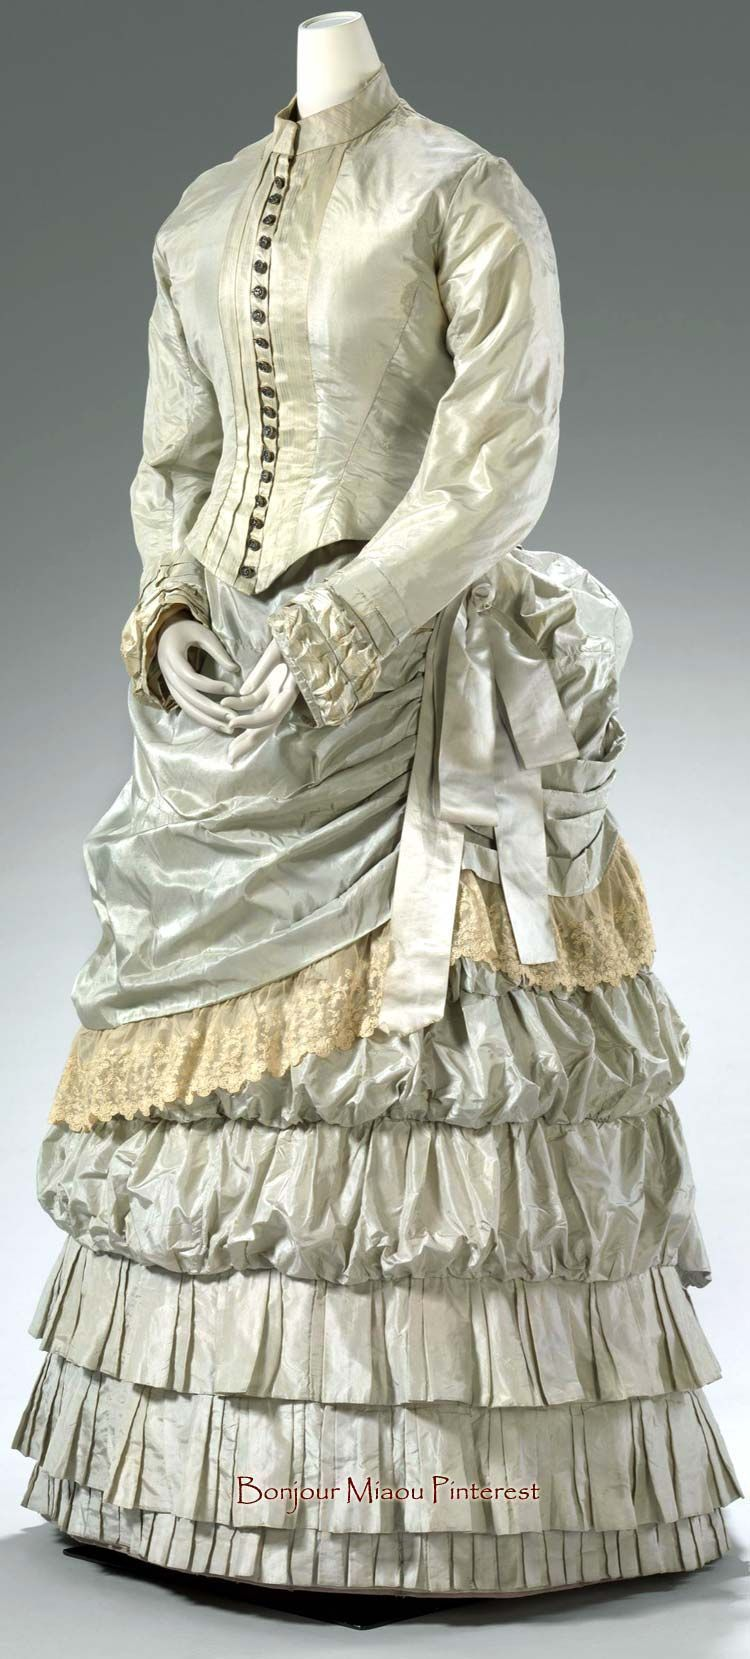 Day dress, English, ca. 1883. Two pieces. Pale green silk trimmed with cream lace. National Gallery of Victoria #englishdresses1880 Day dress, English, ca. 1883. Two pieces. Pale green silk trimmed with cream lace. National Gallery of Victoria #englishdresses1880 Day dress, English, ca. 1883. Two pieces. Pale green silk trimmed with cream lace. National Gallery of Victoria #englishdresses1880 Day dress, English, ca. 1883. Two pieces. Pale green silk trimmed with cream lace. National Gallery of V #englishdresses1880